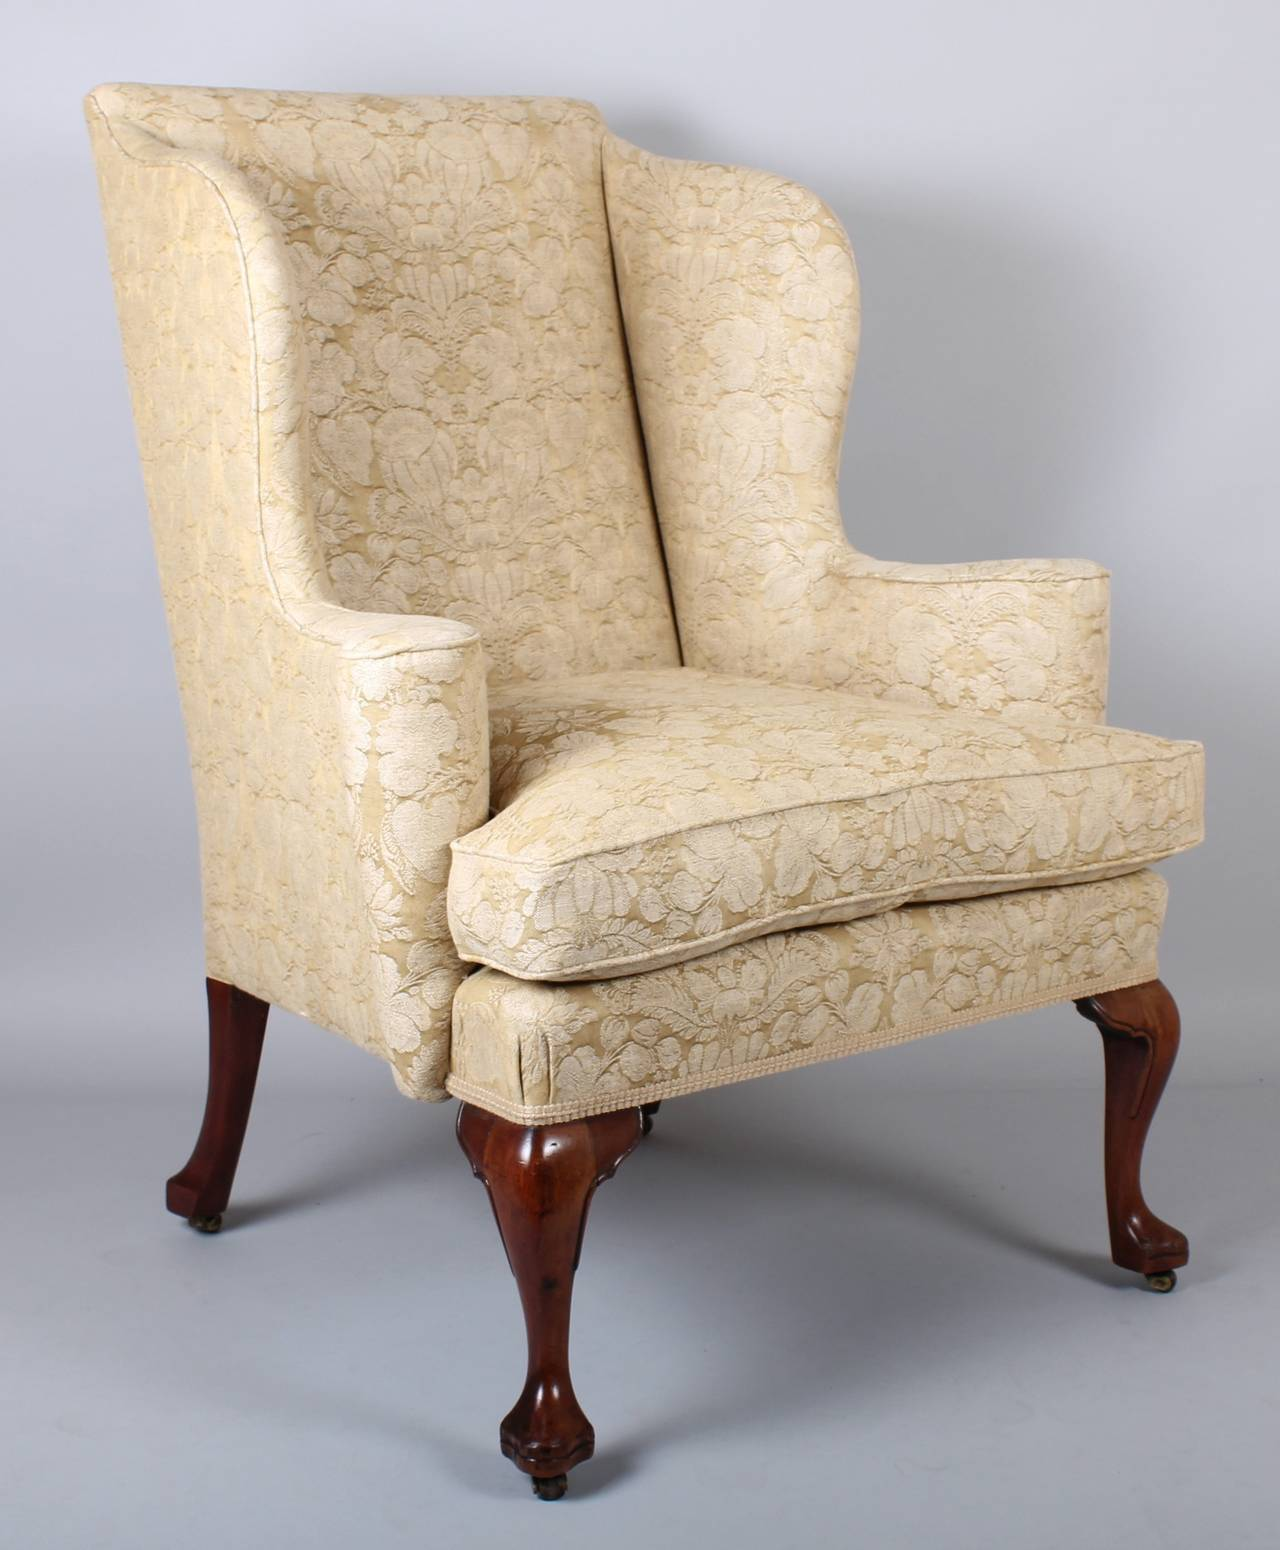 queen anne style chairs rocking camping chair wingback on walnut cabriole legs in the classic